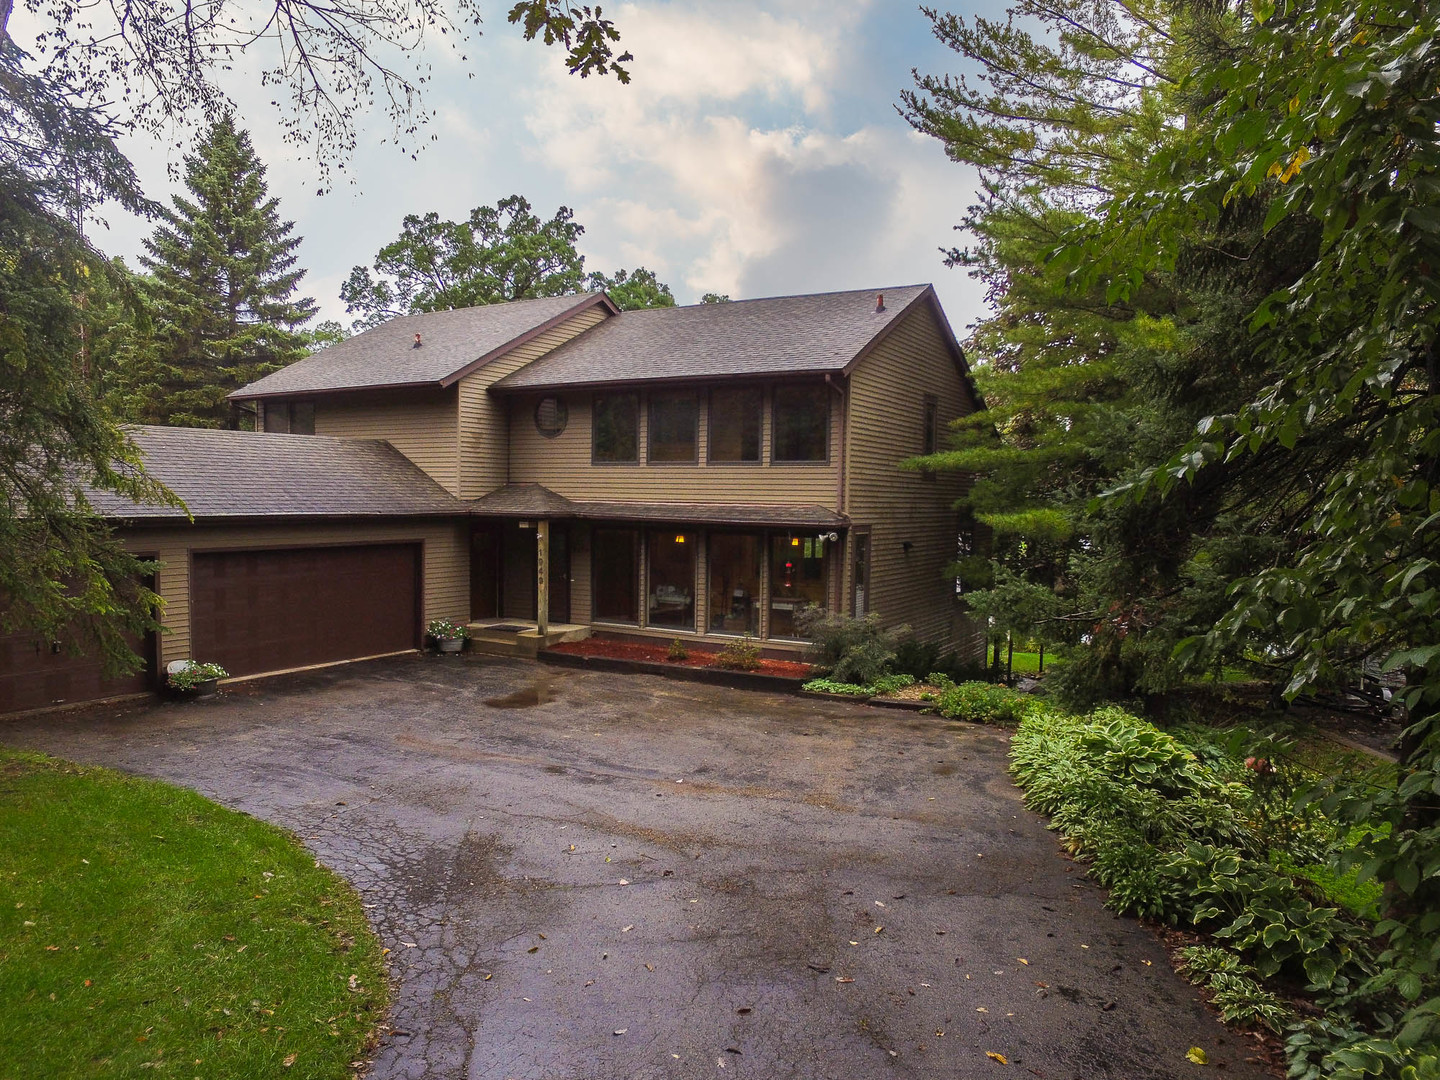 Homes and Real Estate for Sale in 61019 IL - Berkshire ... on north chicago real estate map, eagle ridge resort map, illinois real estate map, lake carroll real estate map,